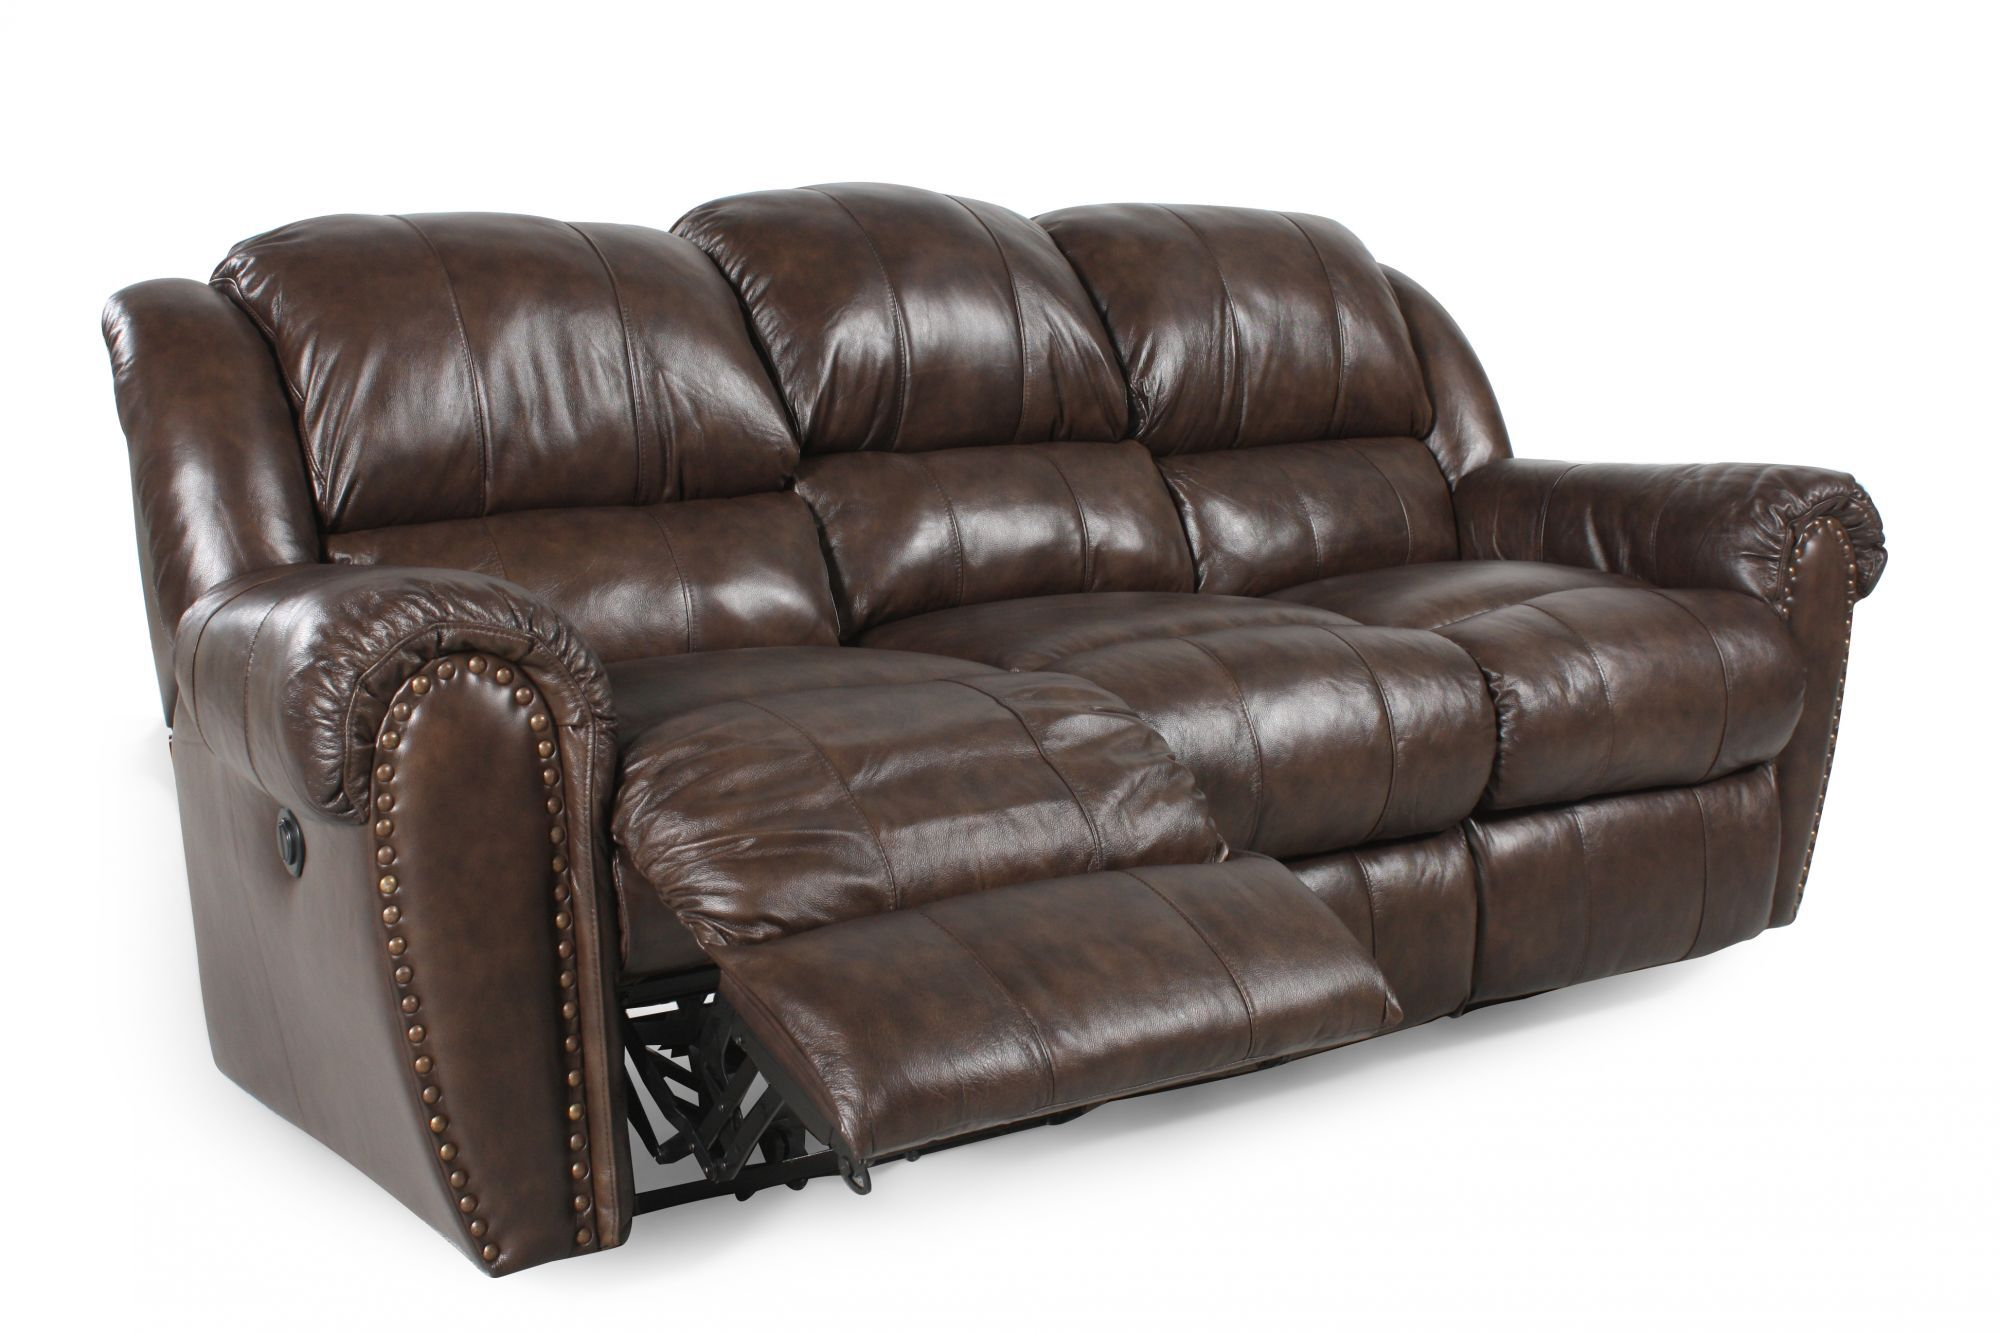 nailhead recliner sofa button leather traditional accented reclining in brown